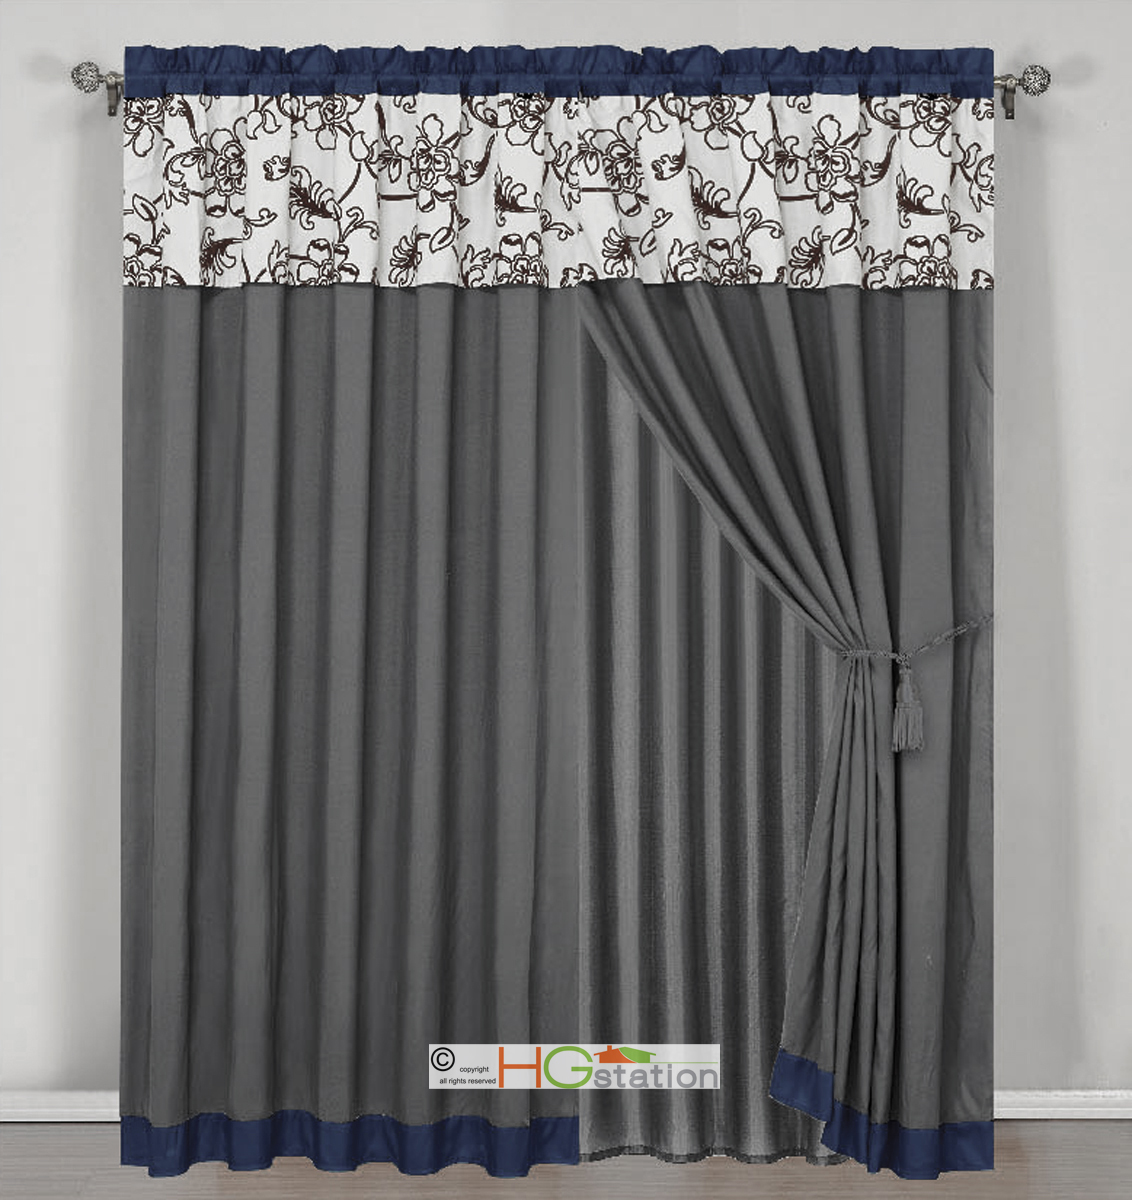 4 stripe oasis floral garden curtain set blue gray brown off white valance drape. Black Bedroom Furniture Sets. Home Design Ideas